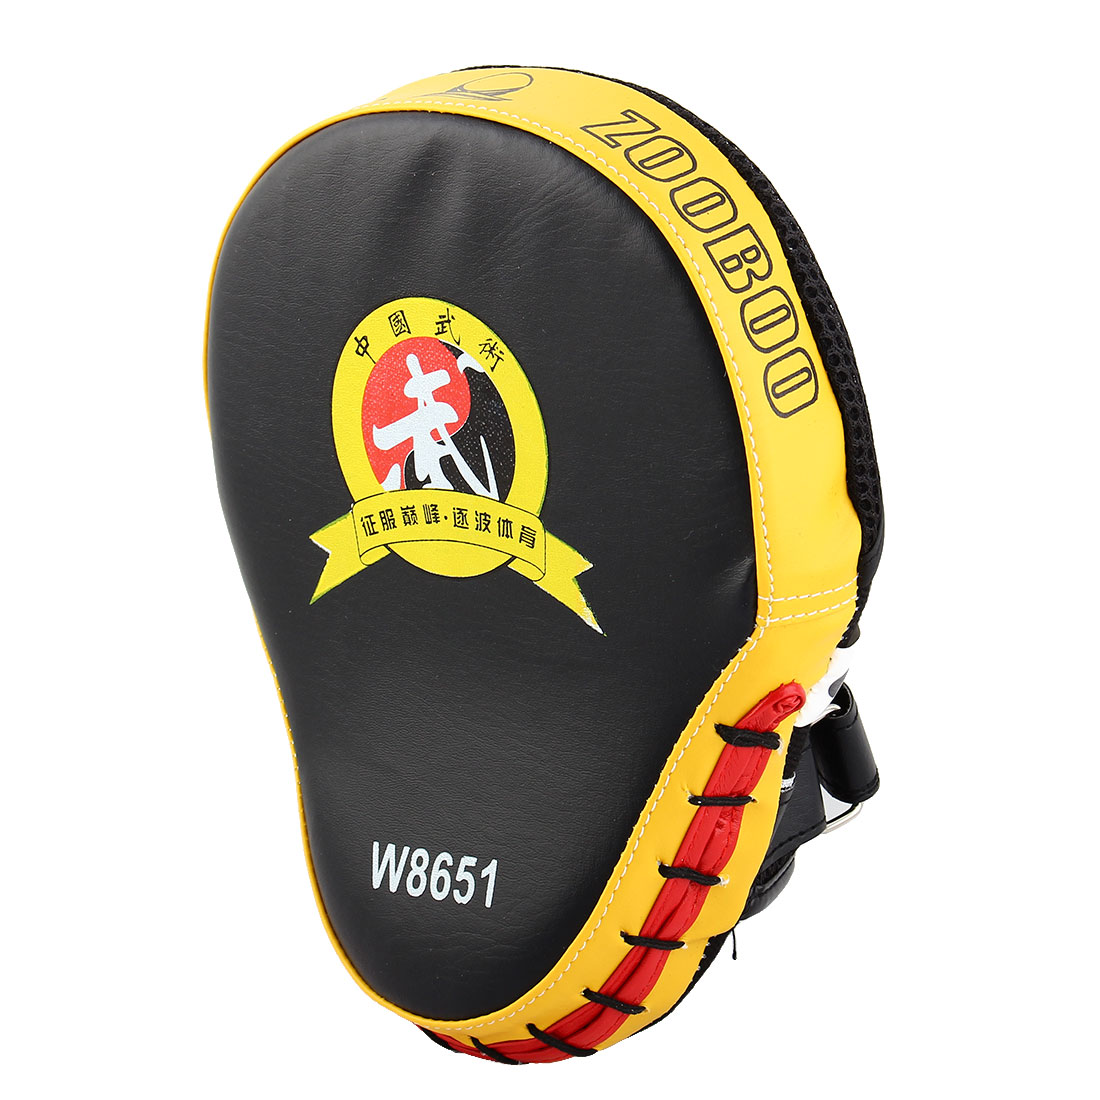 Karate Thai Kick MMA Boxing Punching Mitt Target Focus Pads Strike Shield Yellow